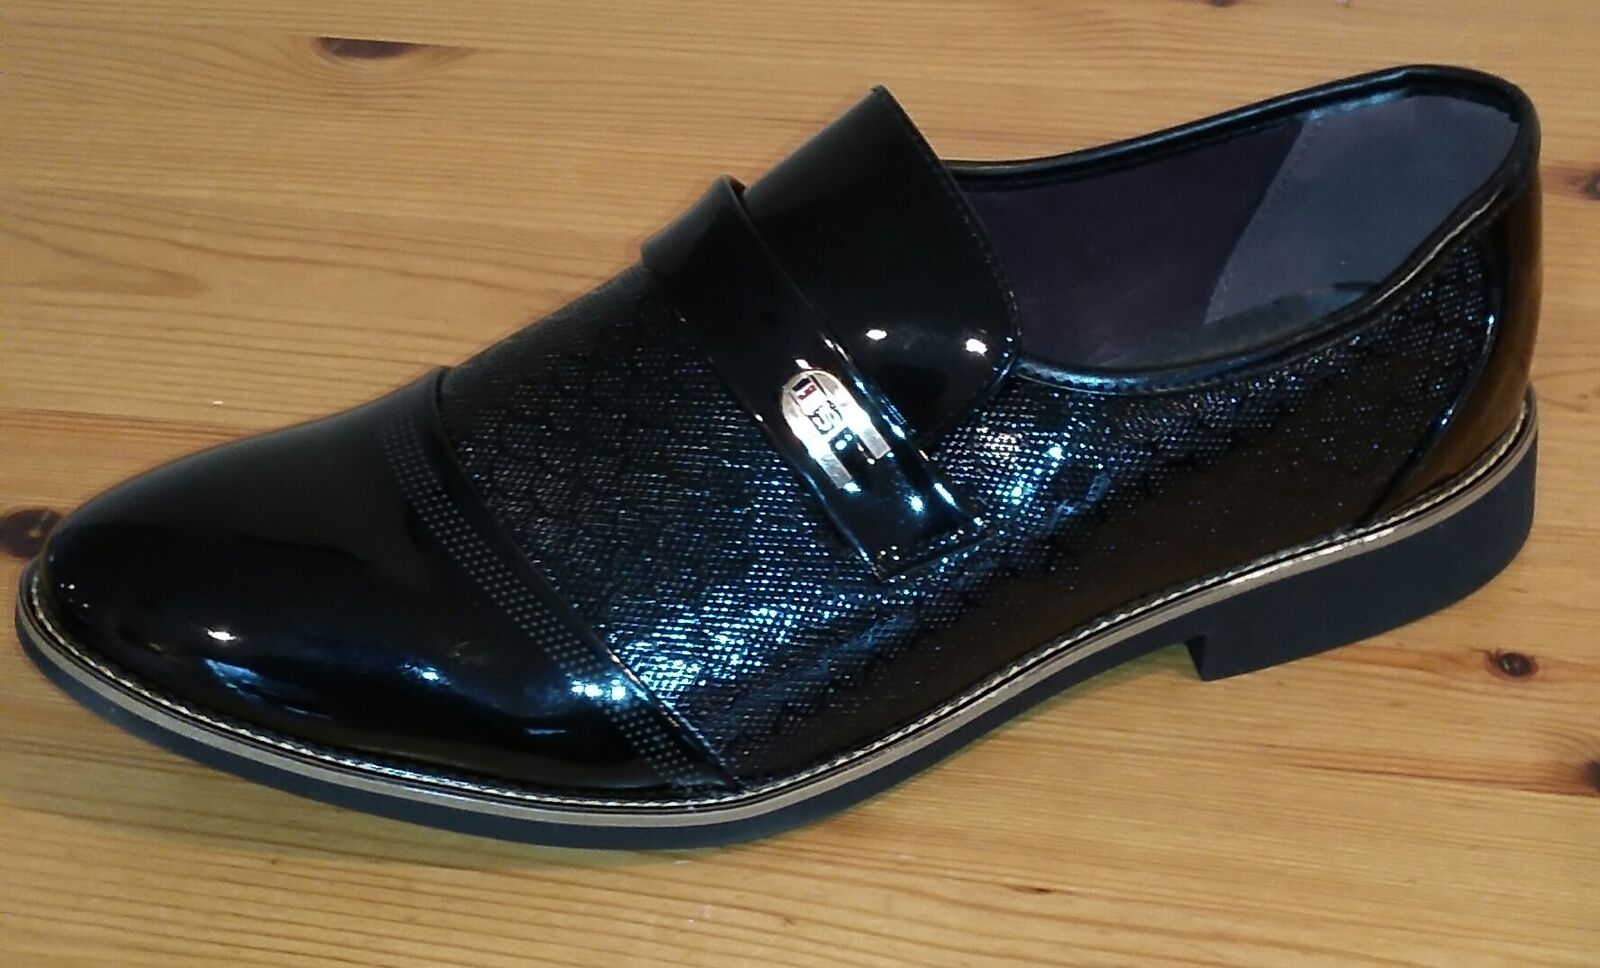 NEW Korean Fashion Patent Leather Loafer shoes Mens Size 11 - Black C3539